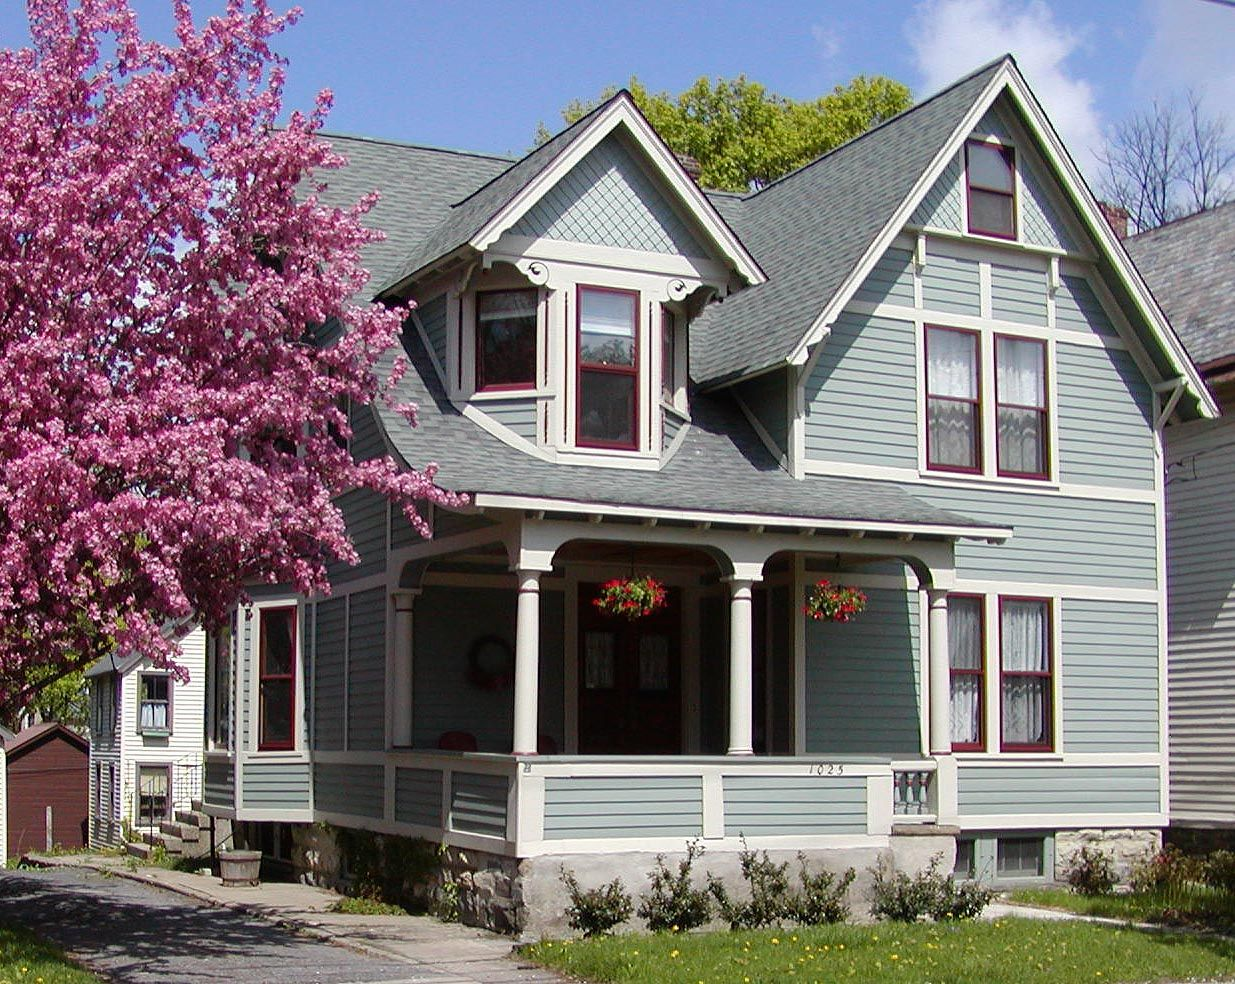 House Paint Colors - A Guide to Great Combinations | Balboa mist ...